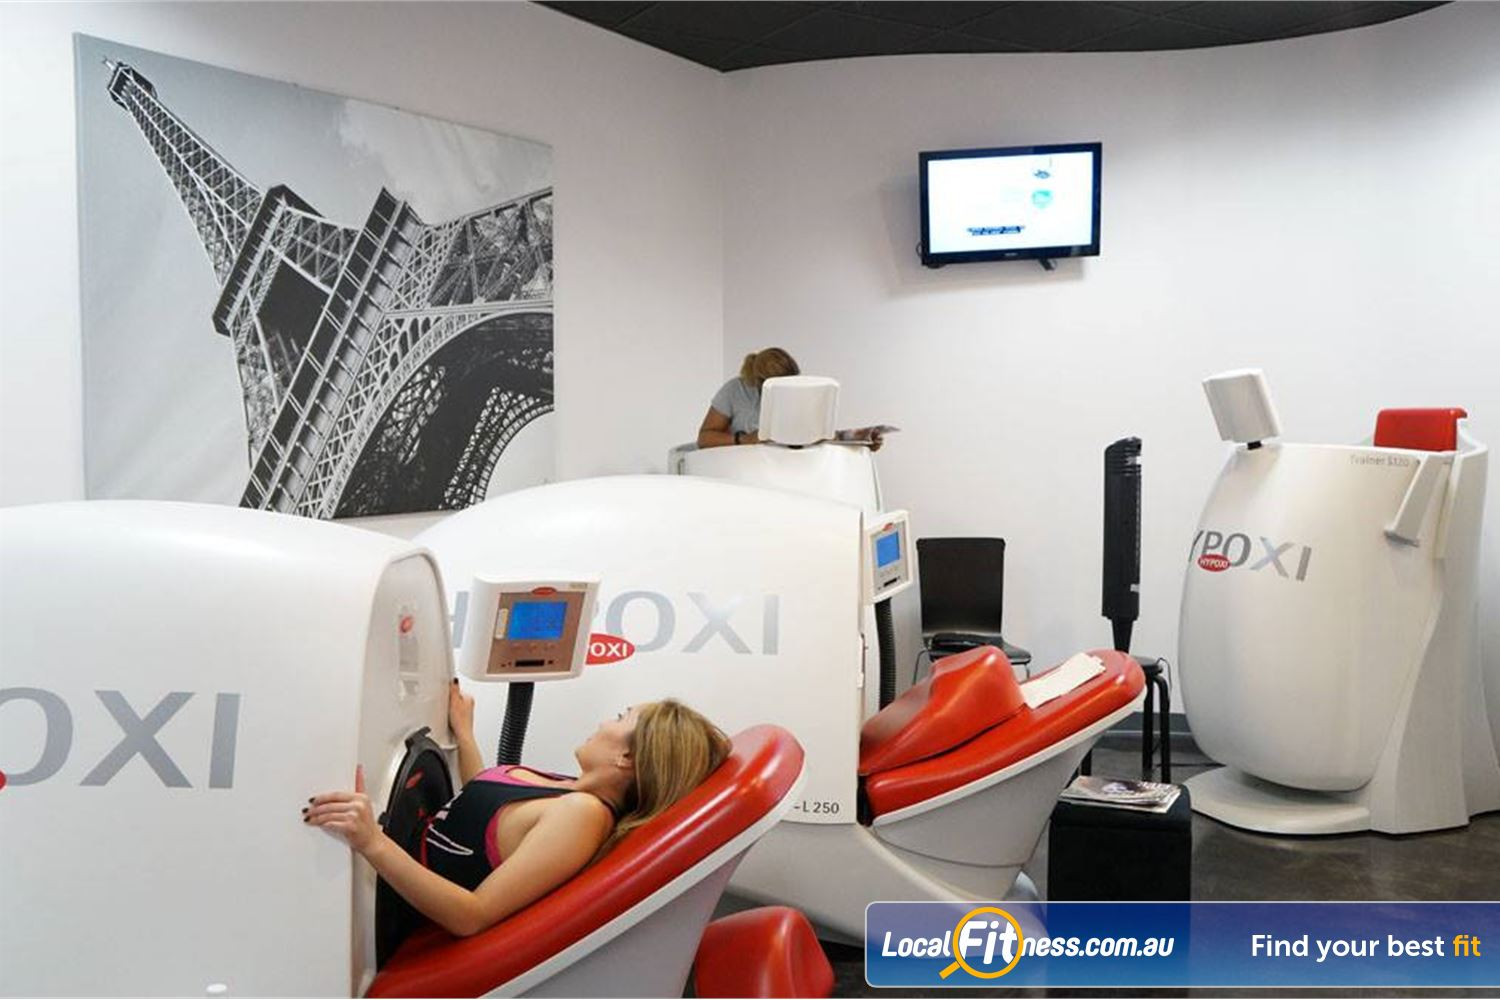 HYPOXI Weight Loss Near Beaumaris Our HYPOXI Sandringham weight-loss is personalised catering 3-4 people at a time.